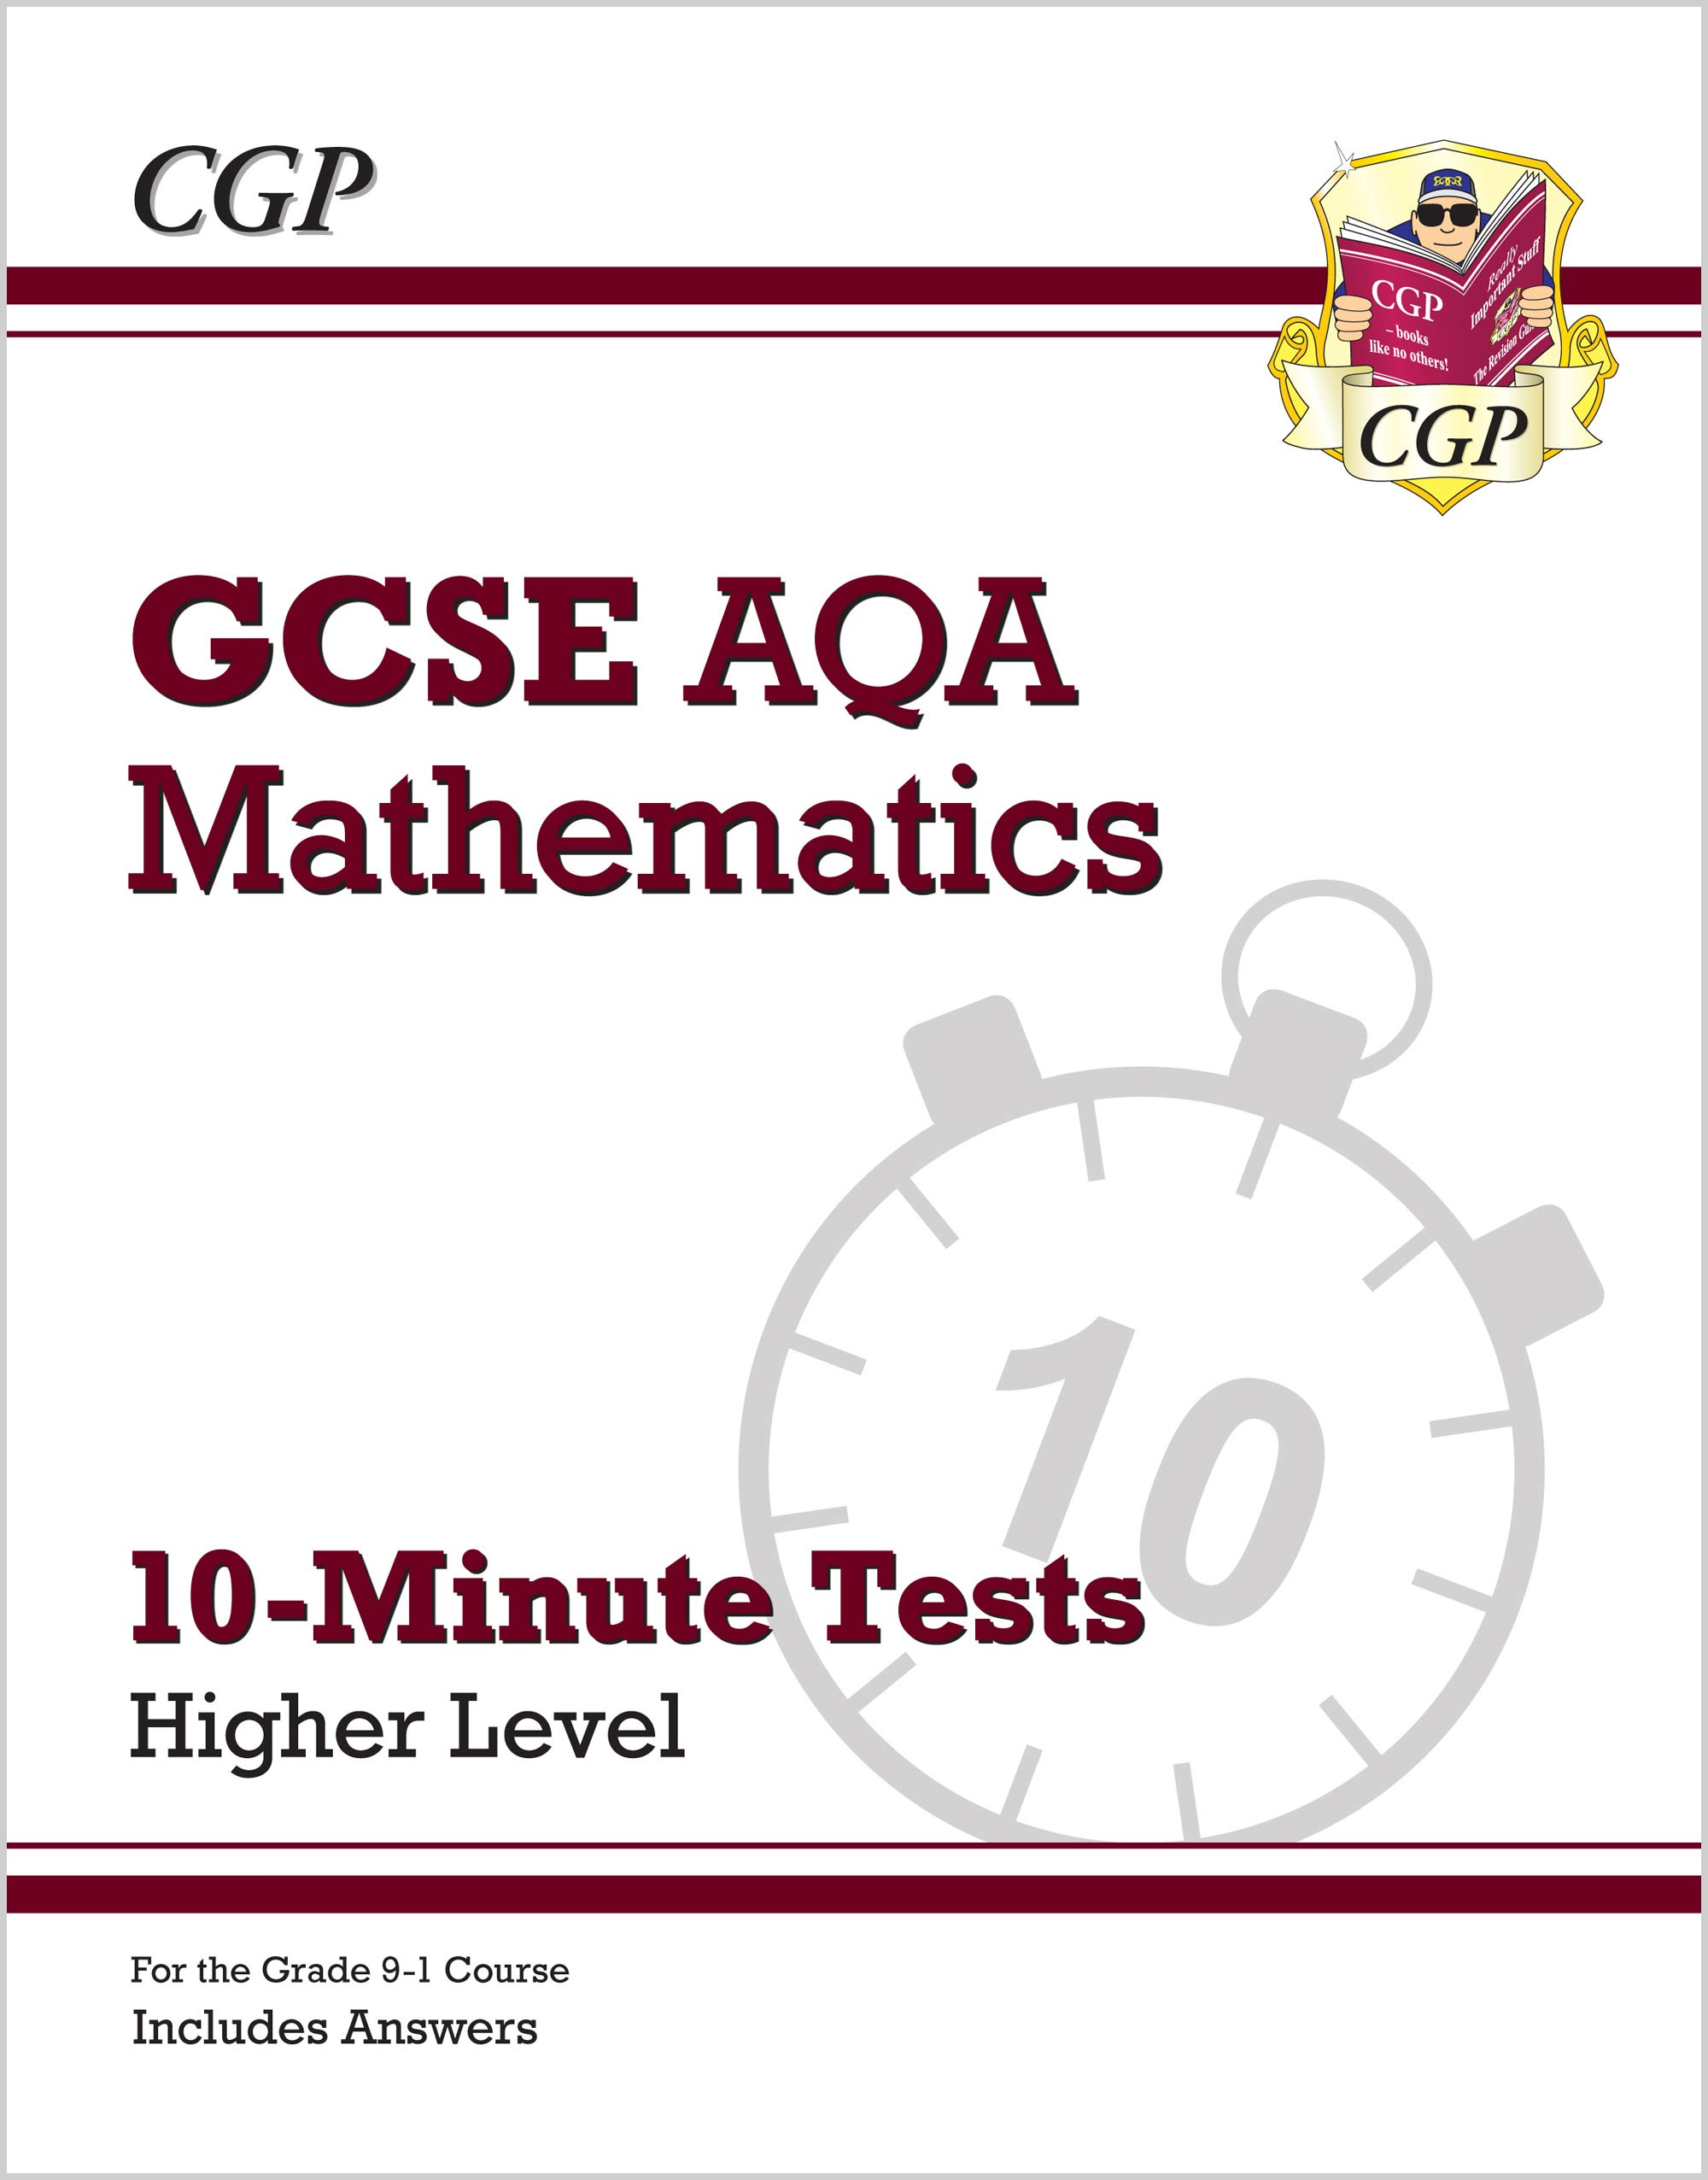 MQHXP41 - New Grade 9-1 GCSE Maths AQA 10-Minute Tests - Higher (includes Answers)